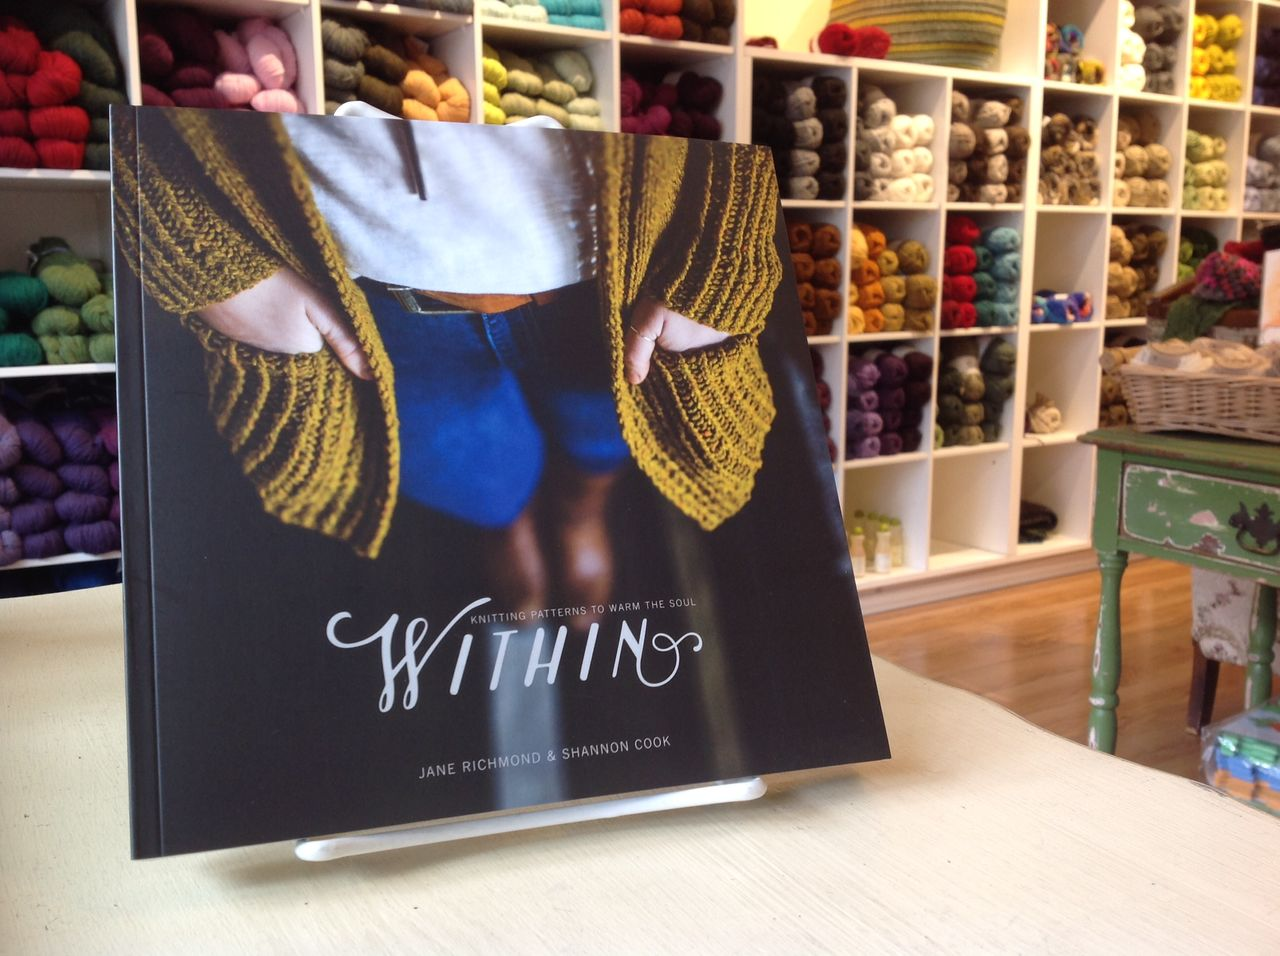 Within, knitting patterns to warm the soul